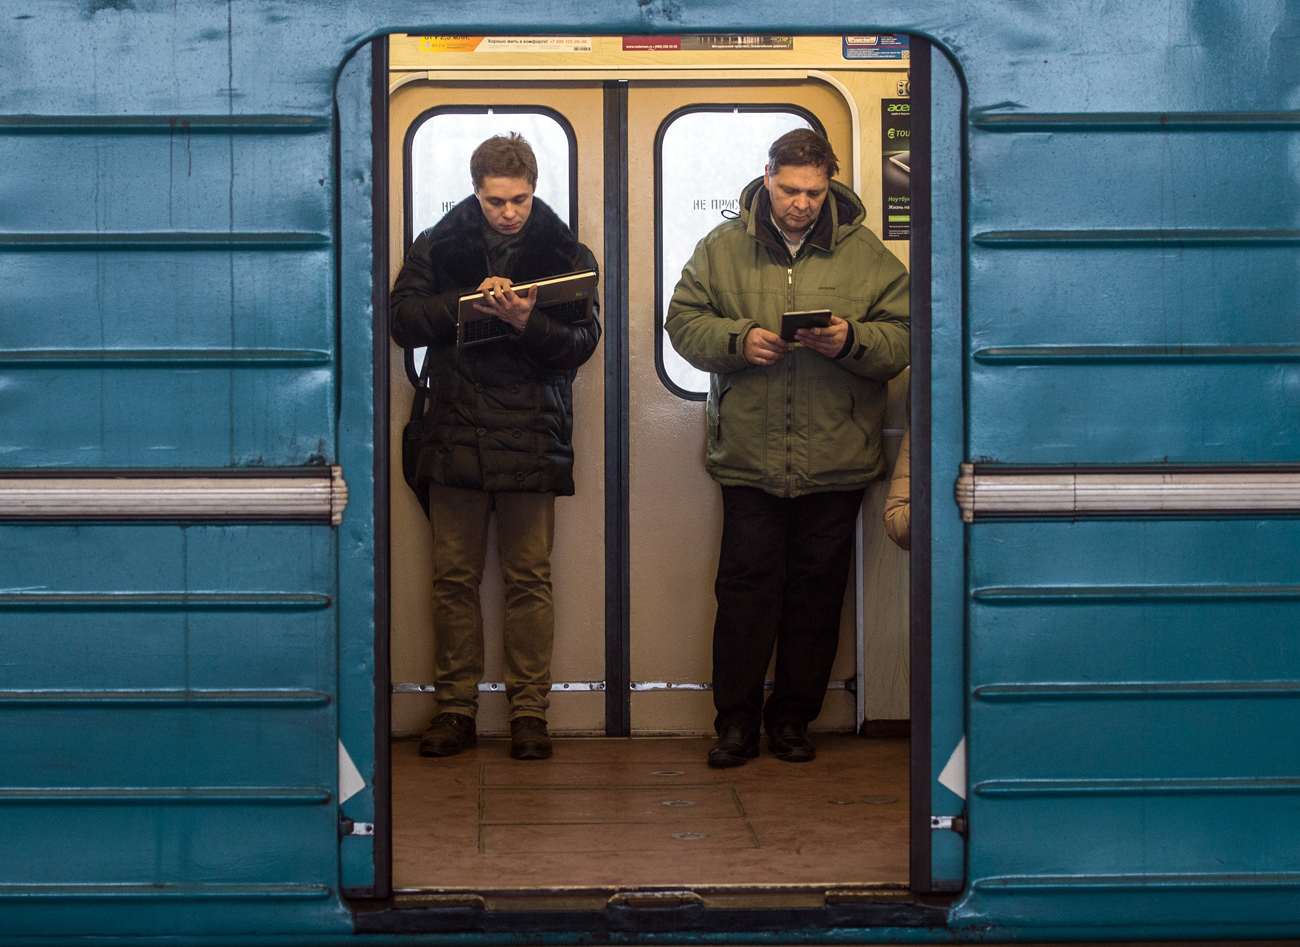 Russians believe their life would not change without the Internet.